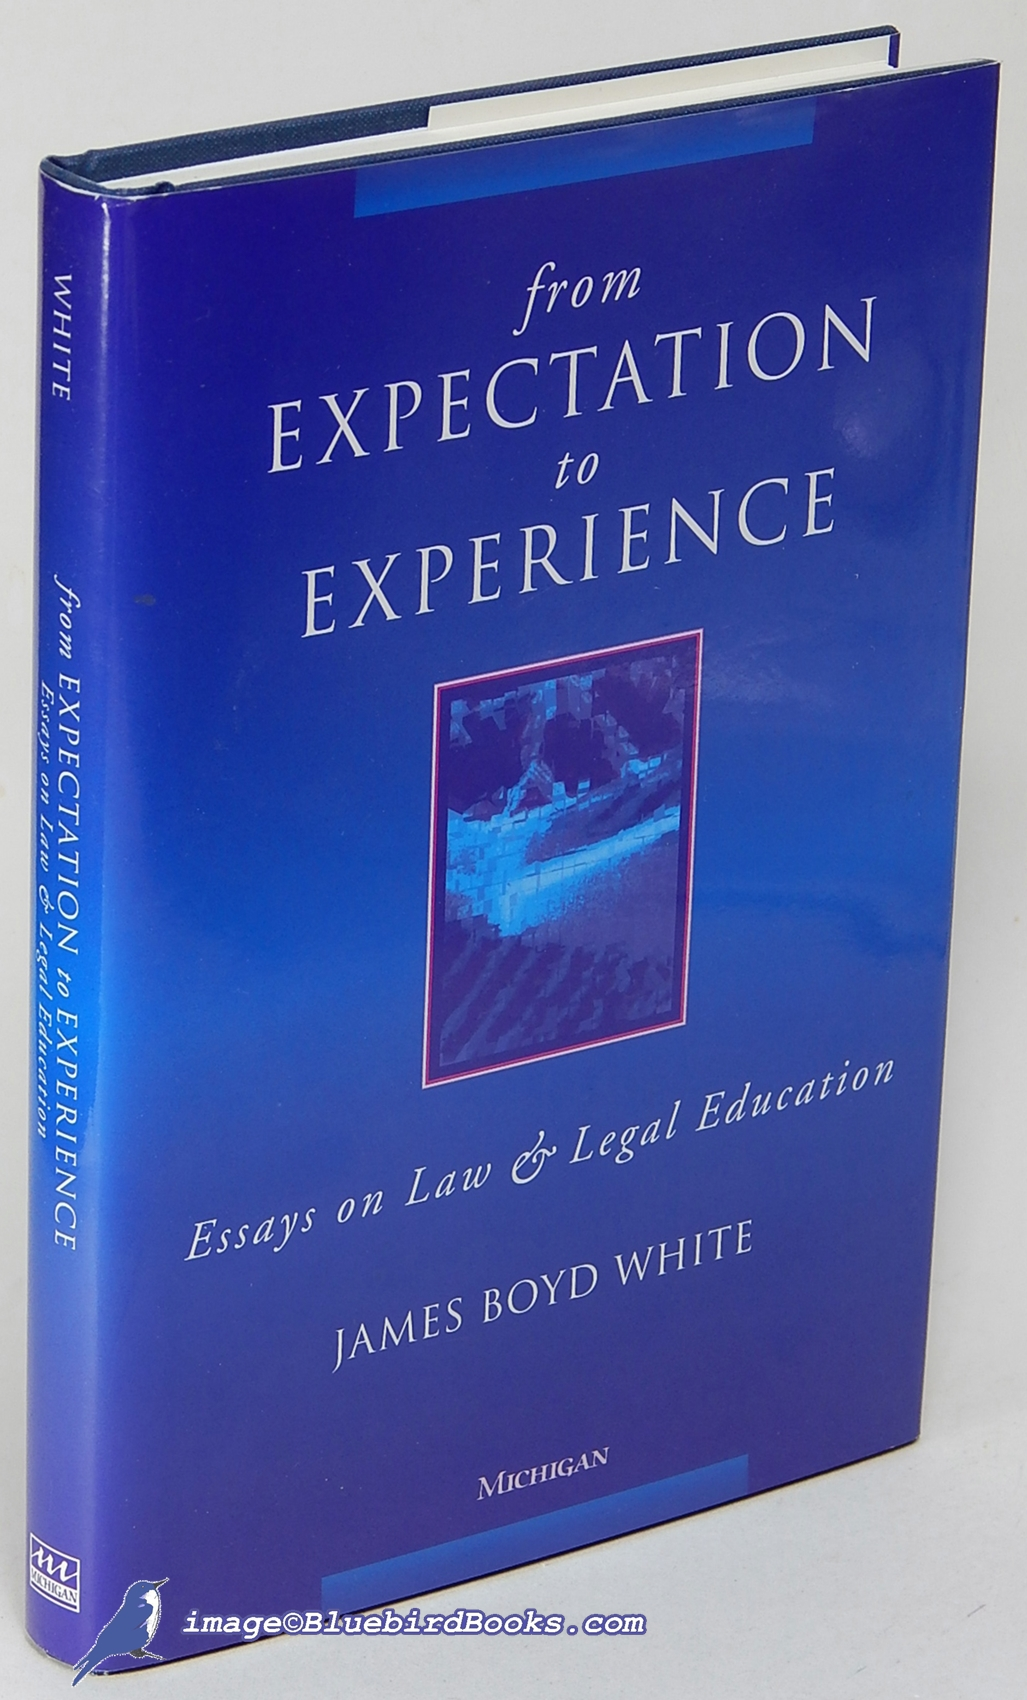 Sample Essay Topics For High School From Expectation To Experience Essays On Law And Legal Education White  James Boyd Persuasive Essay Example High School also What Is The Thesis Of An Essay From Expectation To Experience Essays On Law And Legal Education By  Informative Synthesis Essay